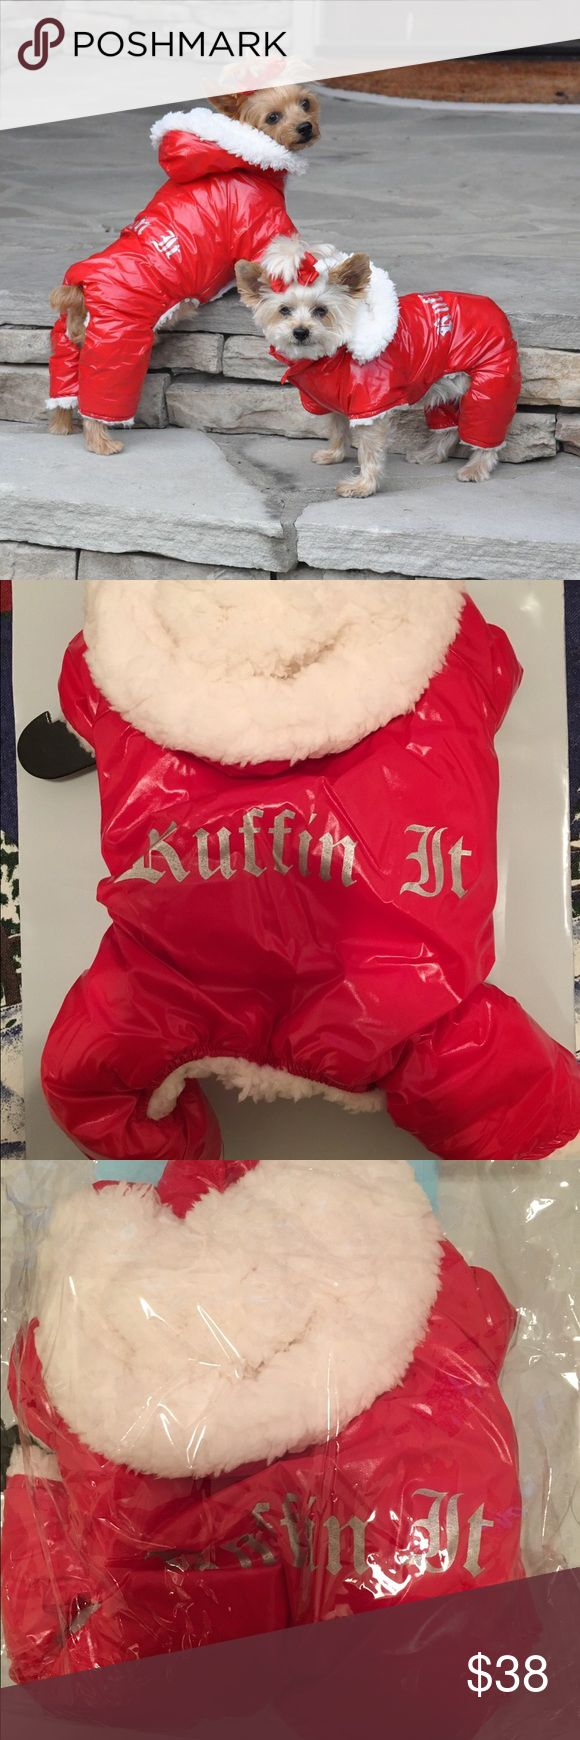 """Red Ruffin It Dog Snow Suit Harness XS TOP of the Line Red Dog Snow Suit is Pure Quality in every way. It is designed to keep your little girl Warm, Cuddly and Dry on those cold fall and winter nights. It is fully lined inside, with a very soft and thick Sherpa Fleece. The Outer Shell is made from a soft, flexible water repellent Polyester/Nylon Blended fabric, with the words """"Ruffin It"""" silk screened on the middle back area.     Size Back Length Chest Weight (pounds) X-Small 9"""" 11-13"""" 3-5…"""